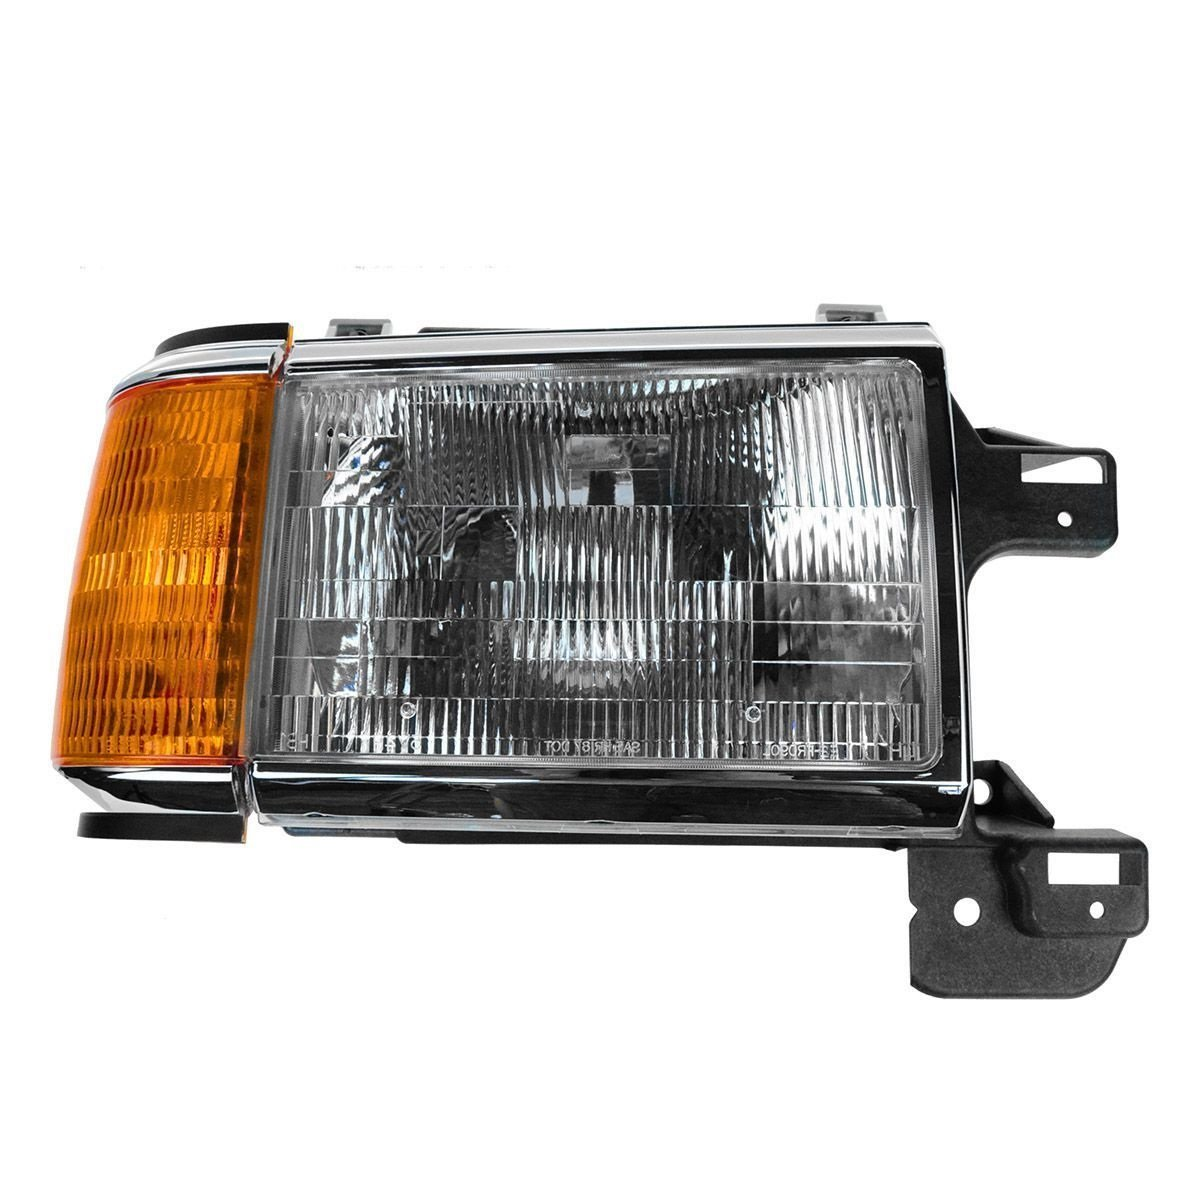 Coachmen Santara 1993-1995 RV Motorhome Right (Passenger) Replacement Front Headlight & Signal Lights Lighting 4 U